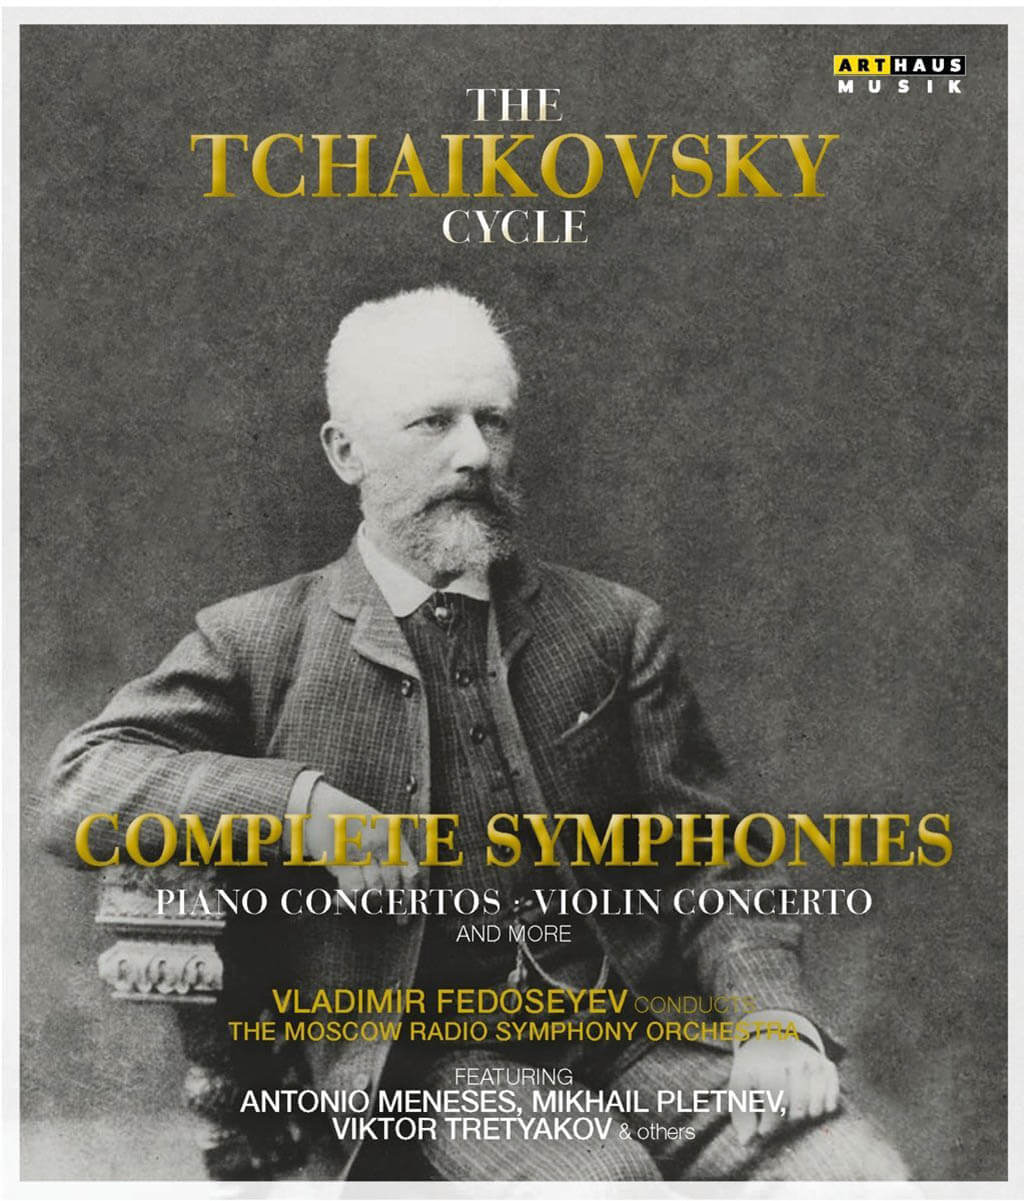 The Tchaikovsky Cycle: The Moscow Radio Symphony Orchestra, Vladimir Fedoseyev. Arthaus: 109318